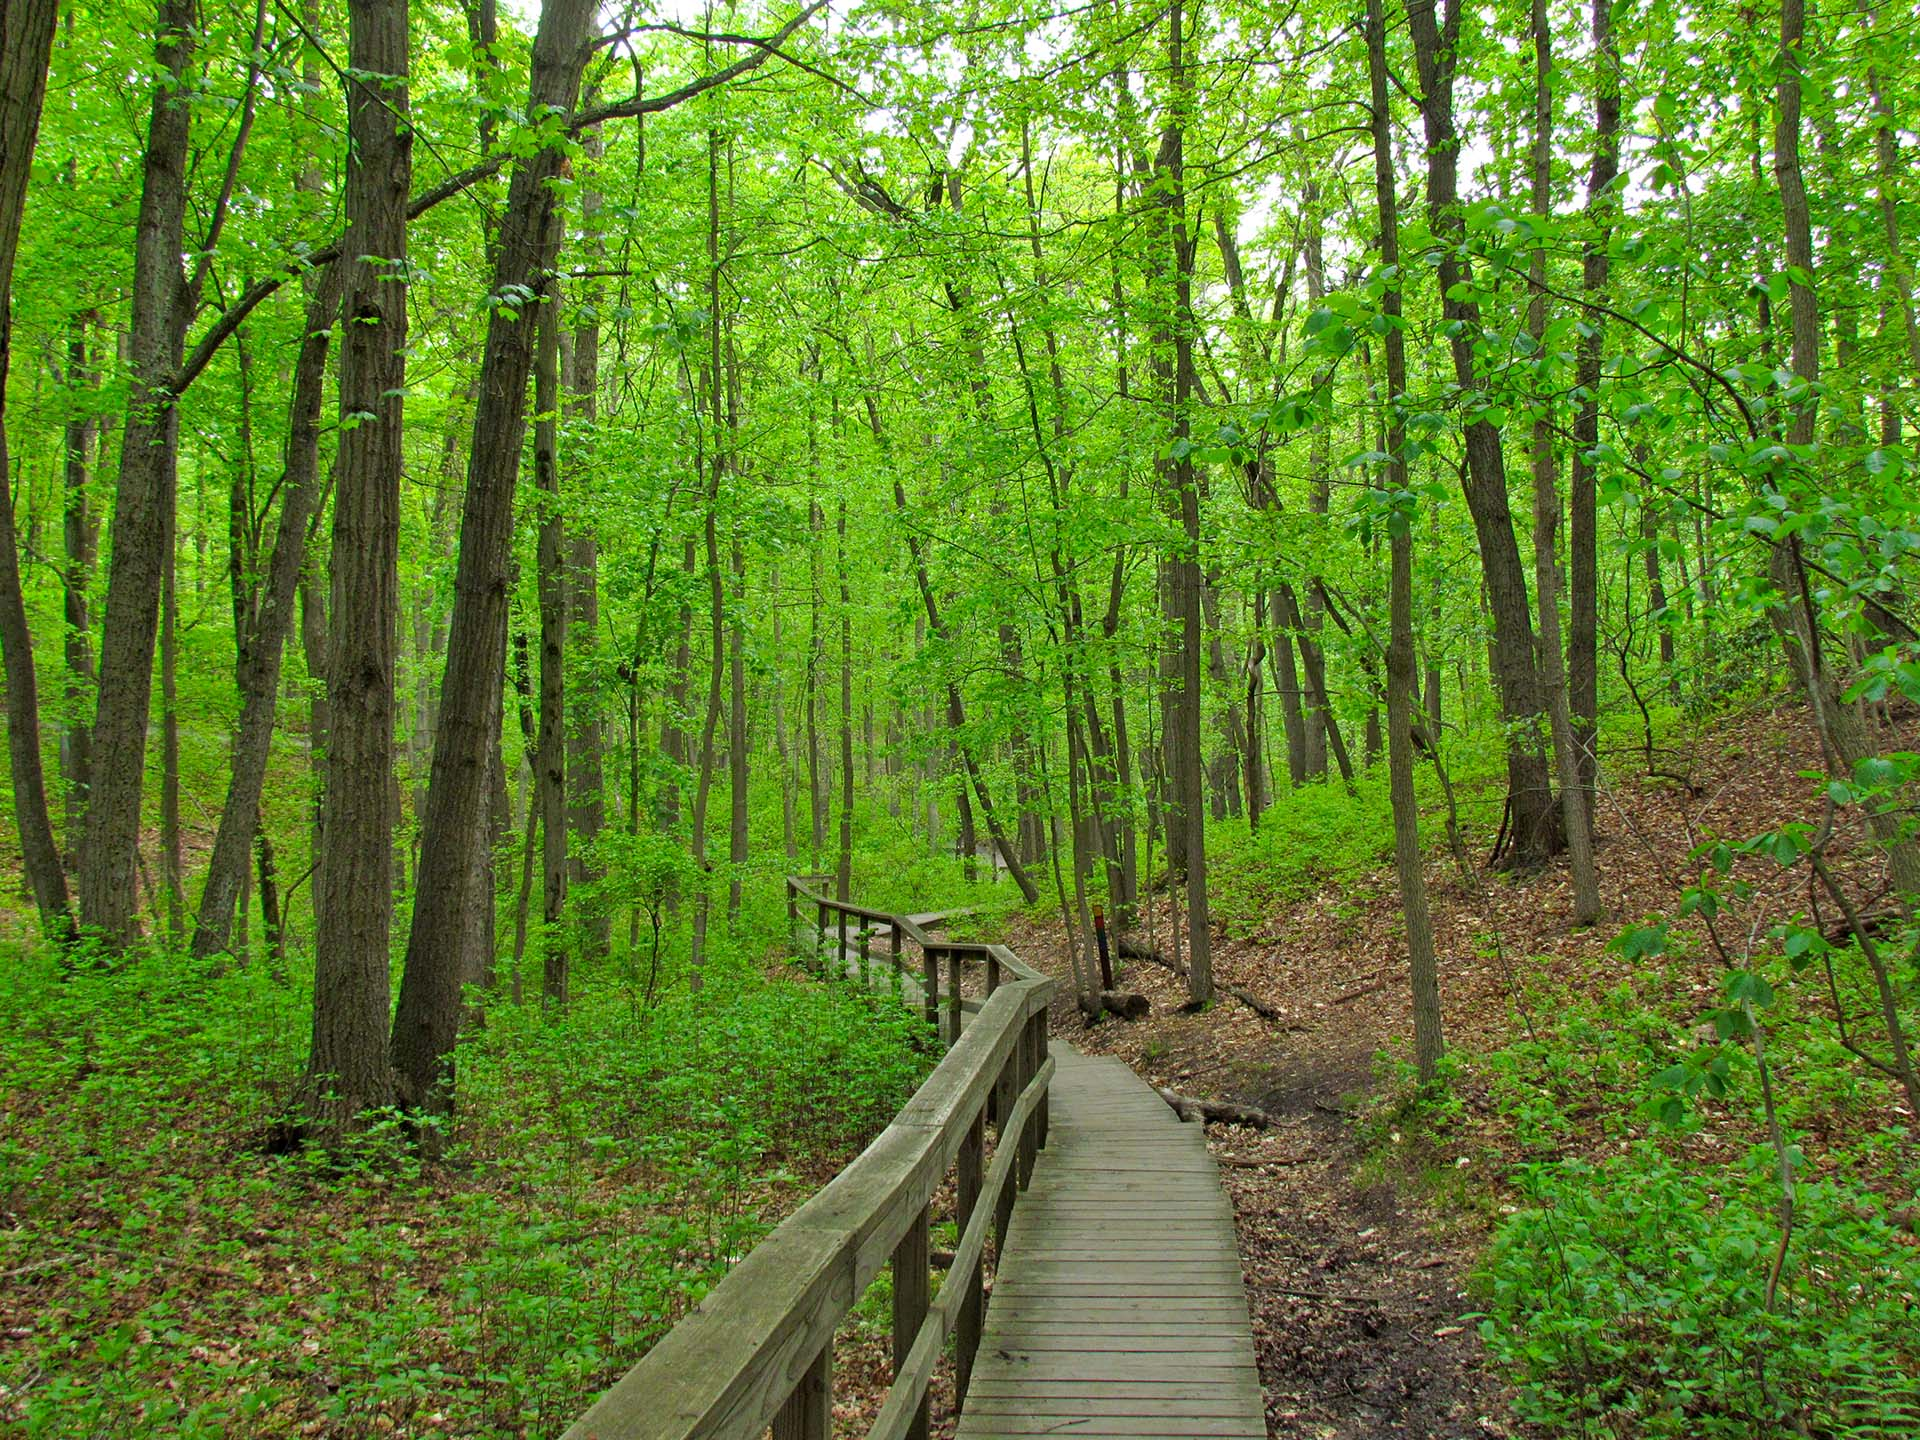 A hiking trail through the woods.